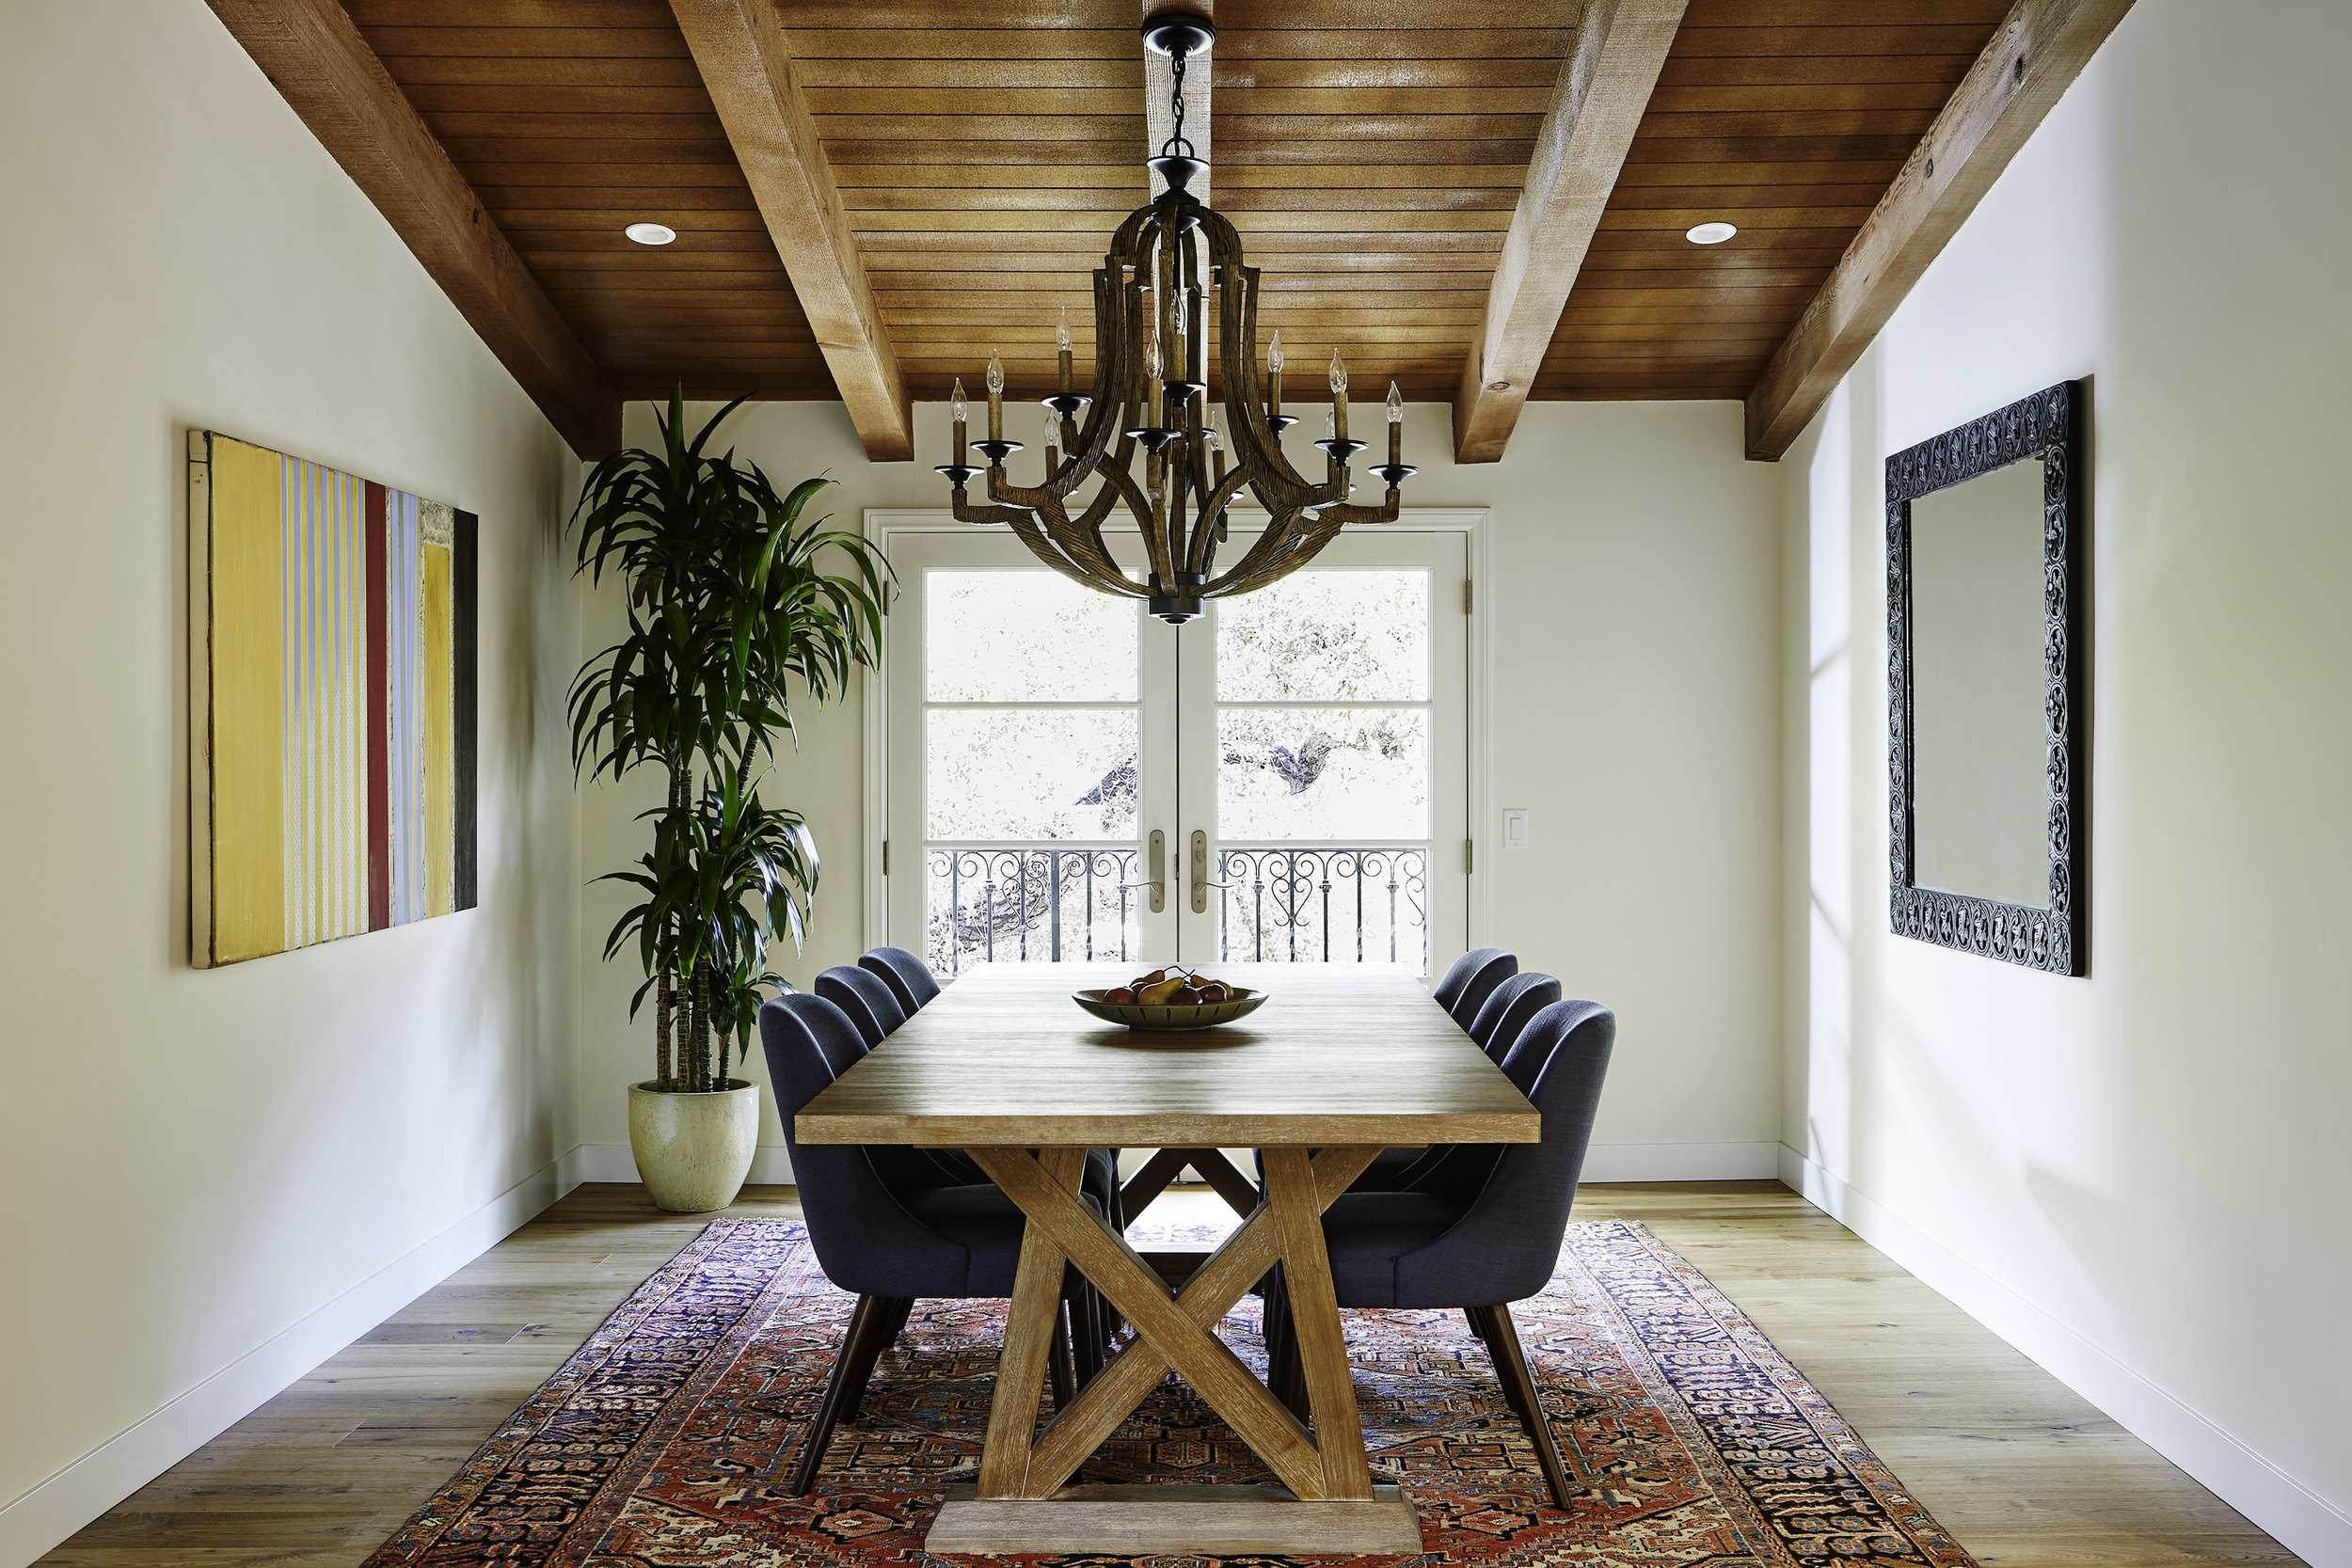 Lily_Spindle_Pasadena_Dining_Room_1_076.jpg